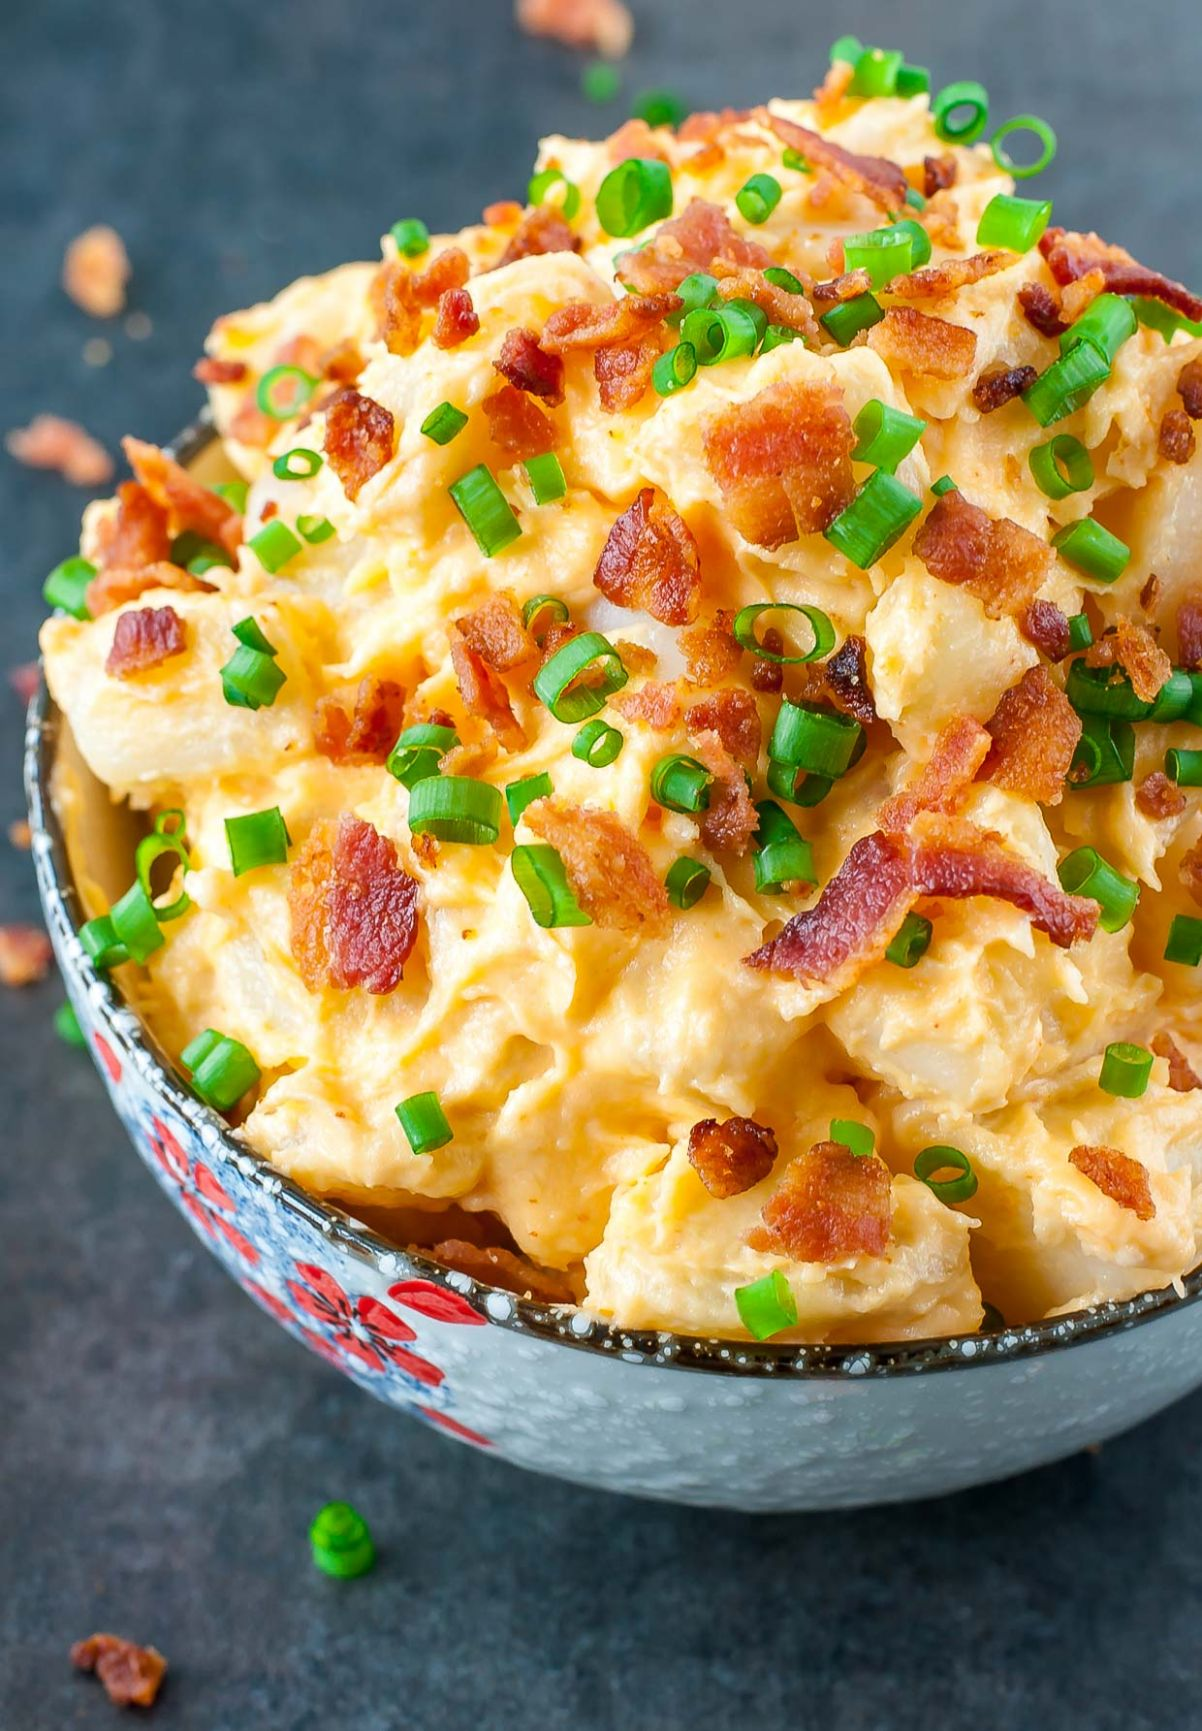 Bacon Sriracha Potato Salad - Recipes Potato Salad With Bacon